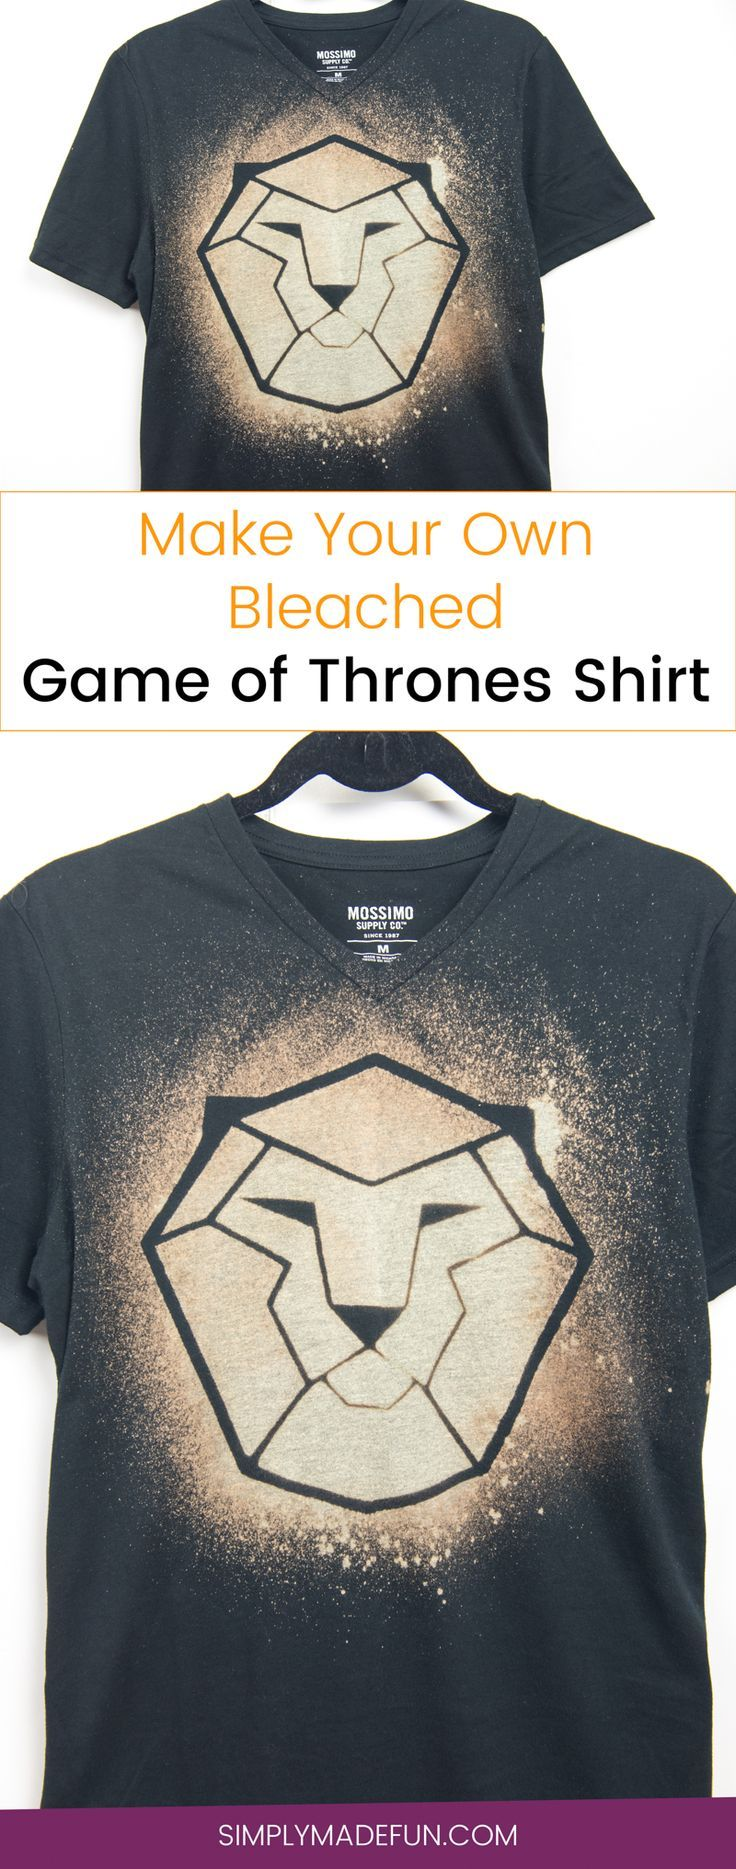 Bleached Game of Thrones Shirt | Bleached Shirt | Freezer Paper DIY | Bleached T-Shirt | Game of Thrones Shirt | Game of Thrones DIY | Silhouette Cameo Crafts